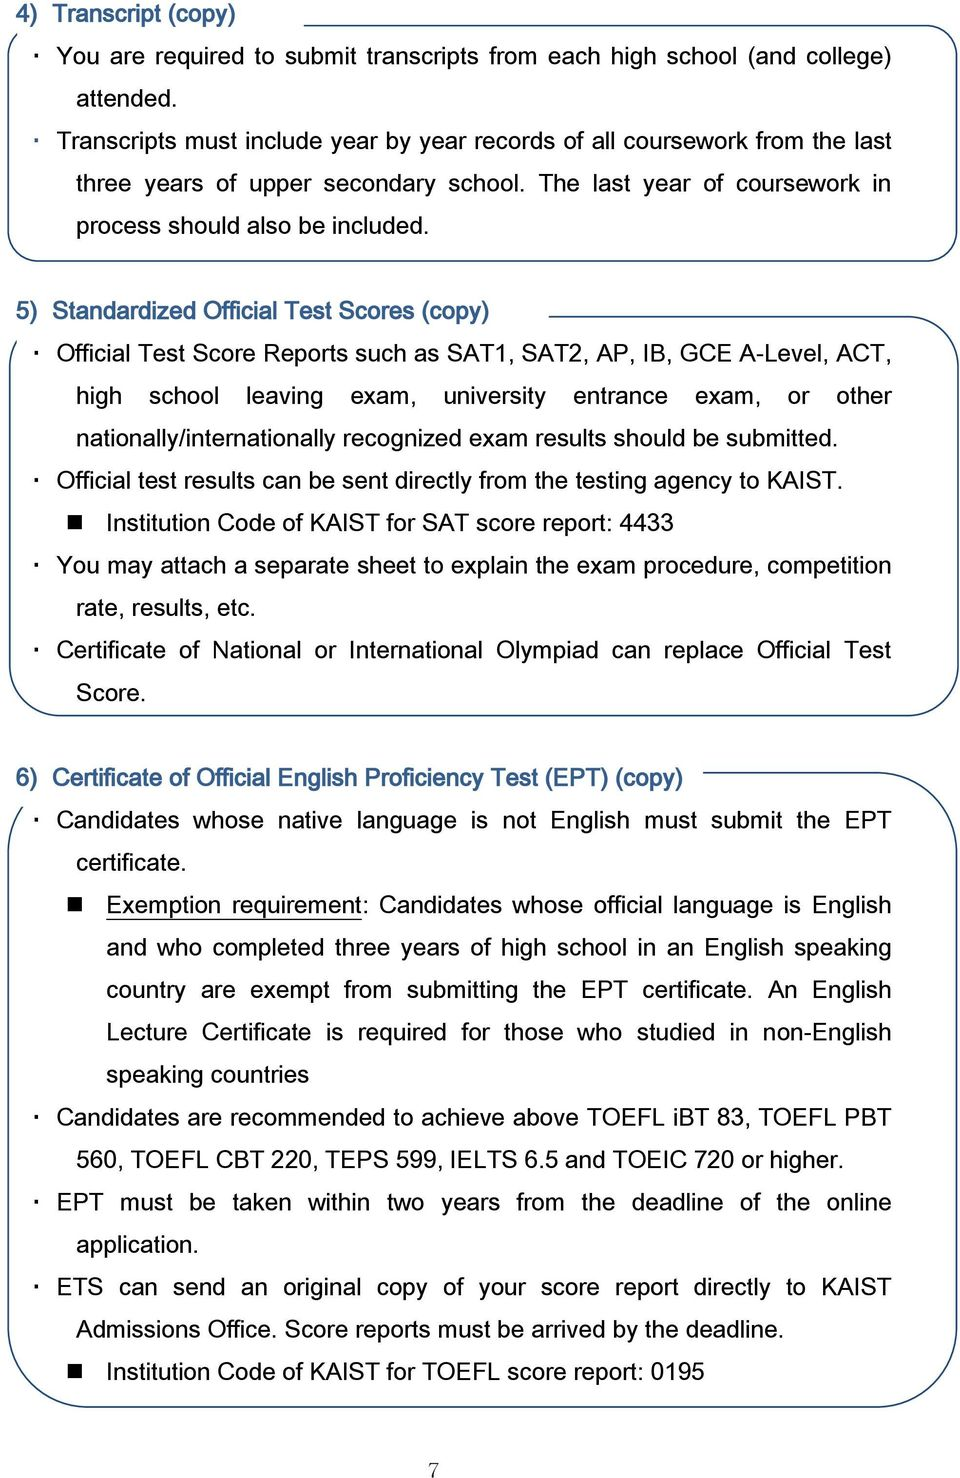 5) Standardized Official Test Scores (copy) Official Test Score Reports such as SAT1, SAT2, AP, IB, GCE A-Level, ACT, high school leaving exam, university entrance exam, or other